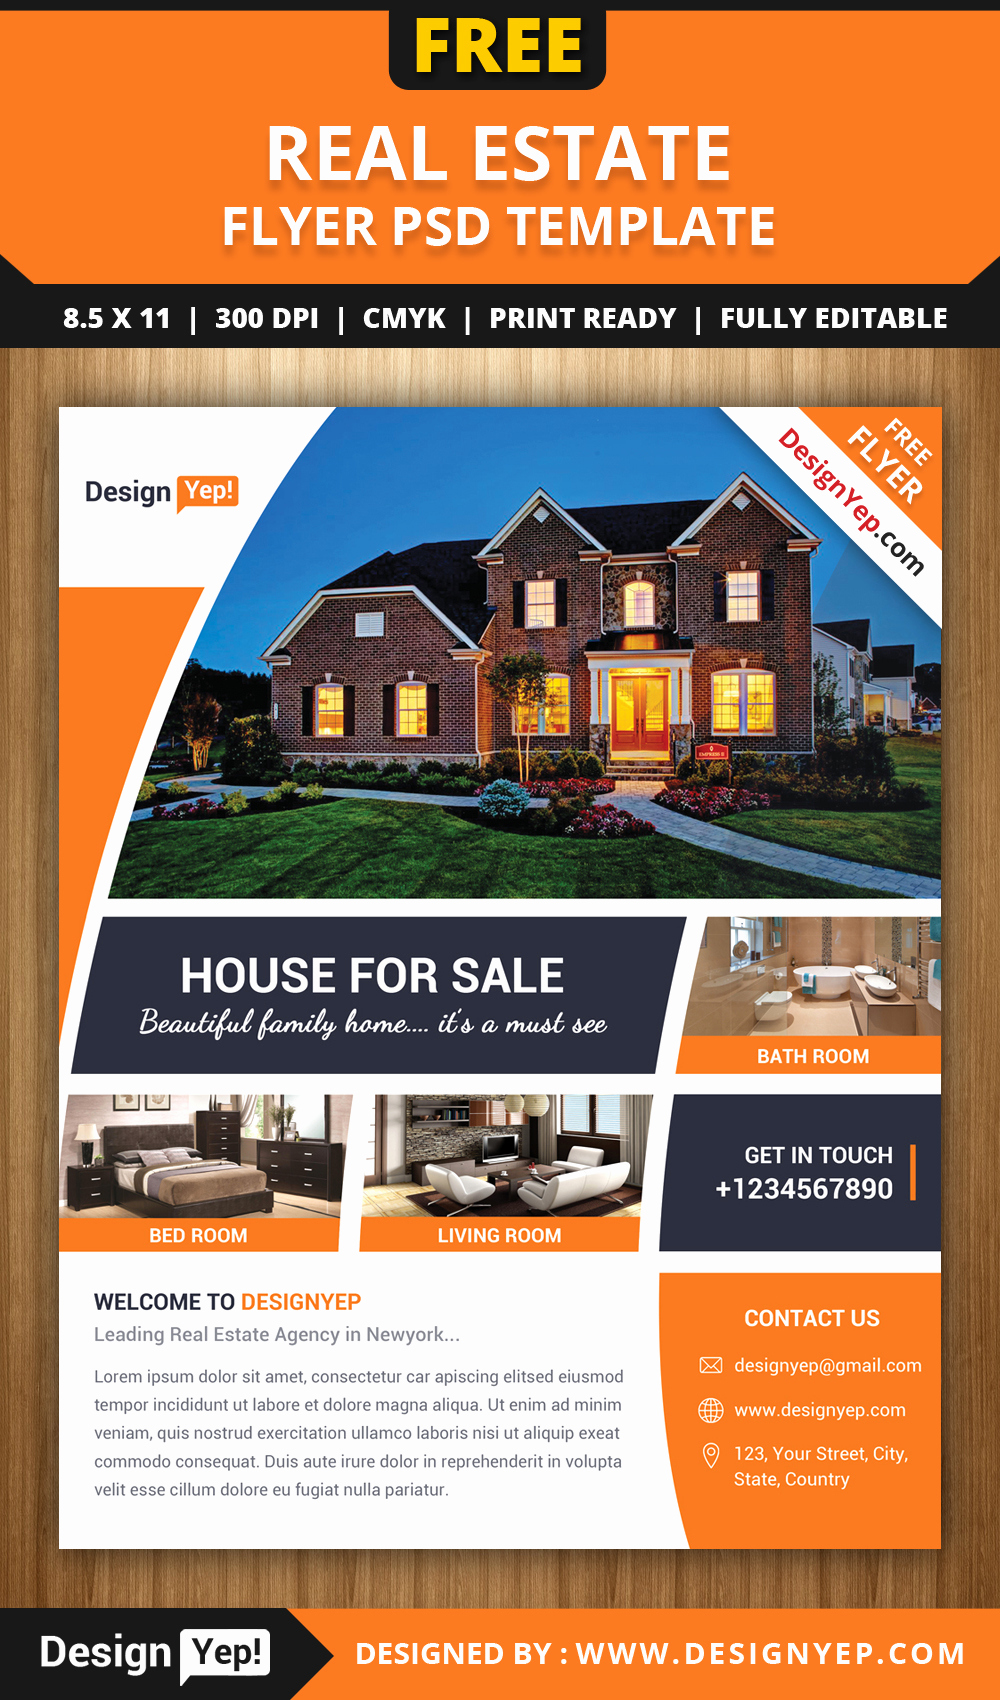 Real Estate Flyer Templates Inspirational Free Real Estate Flyer Psd Template Designyep